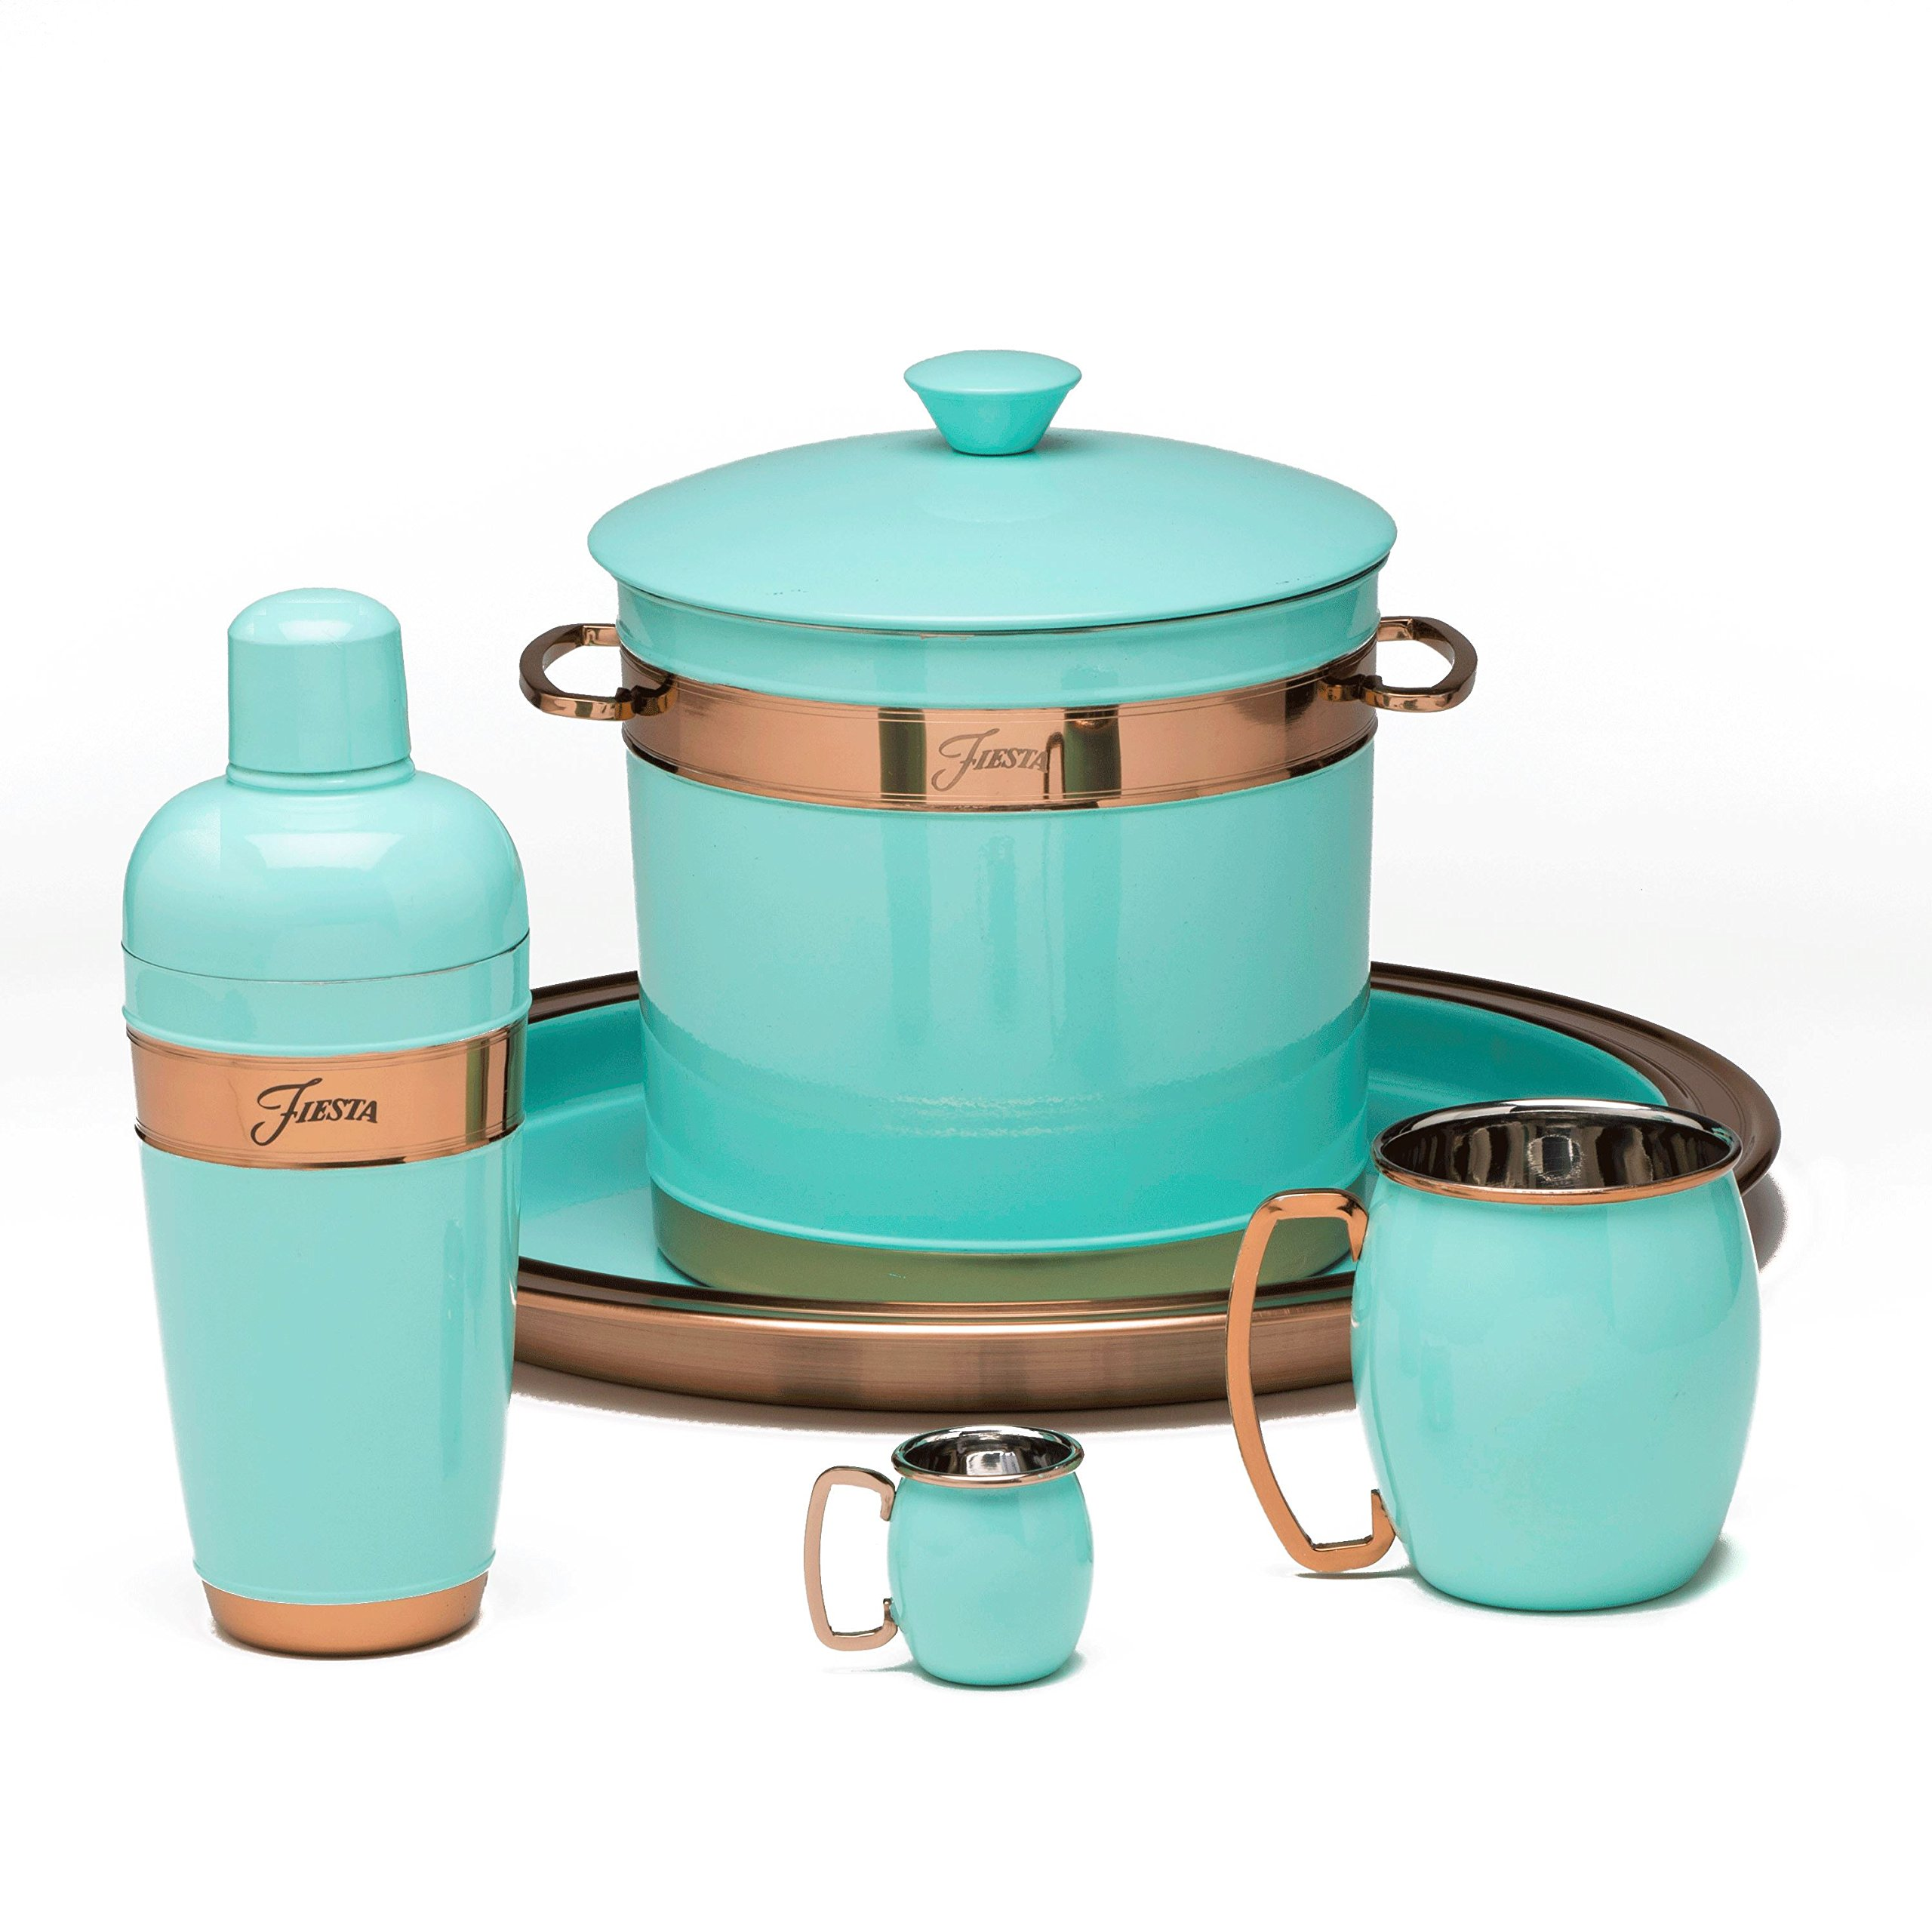 Fiesta 3 quart Double-Walled Ice Bucket with Copper Accents, Turquoise by Fiesta (Image #2)